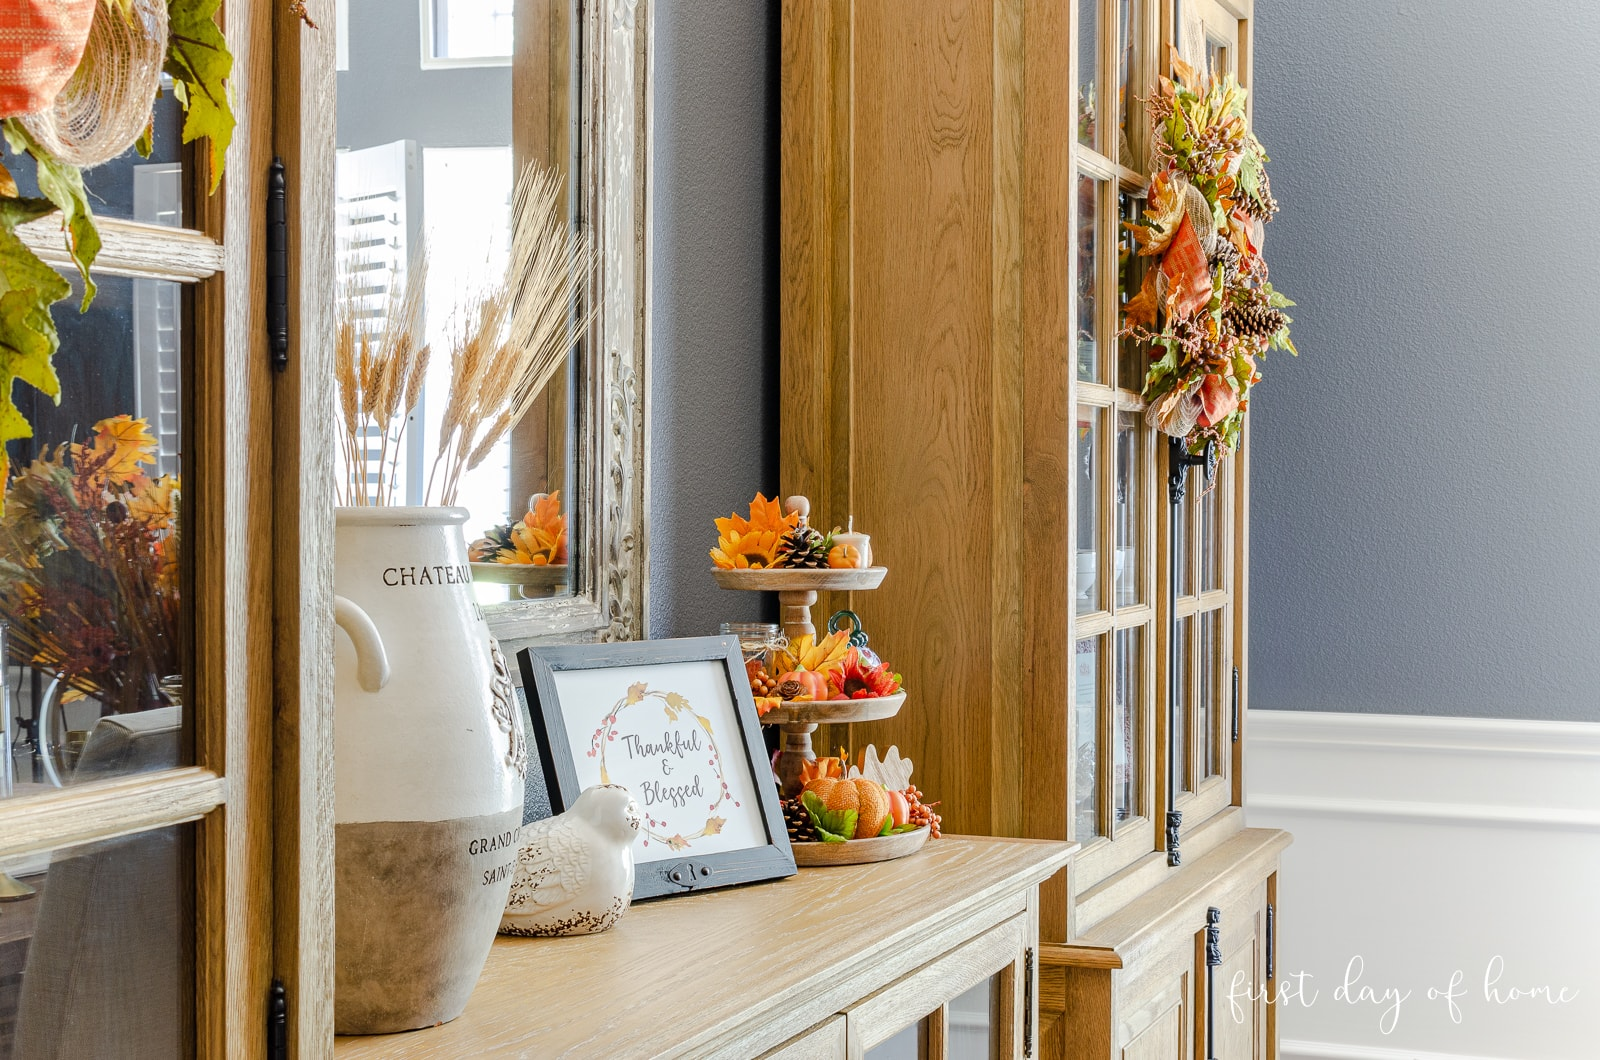 Formal dining room fall decor with rustic fall wreaths and tiered tray decor